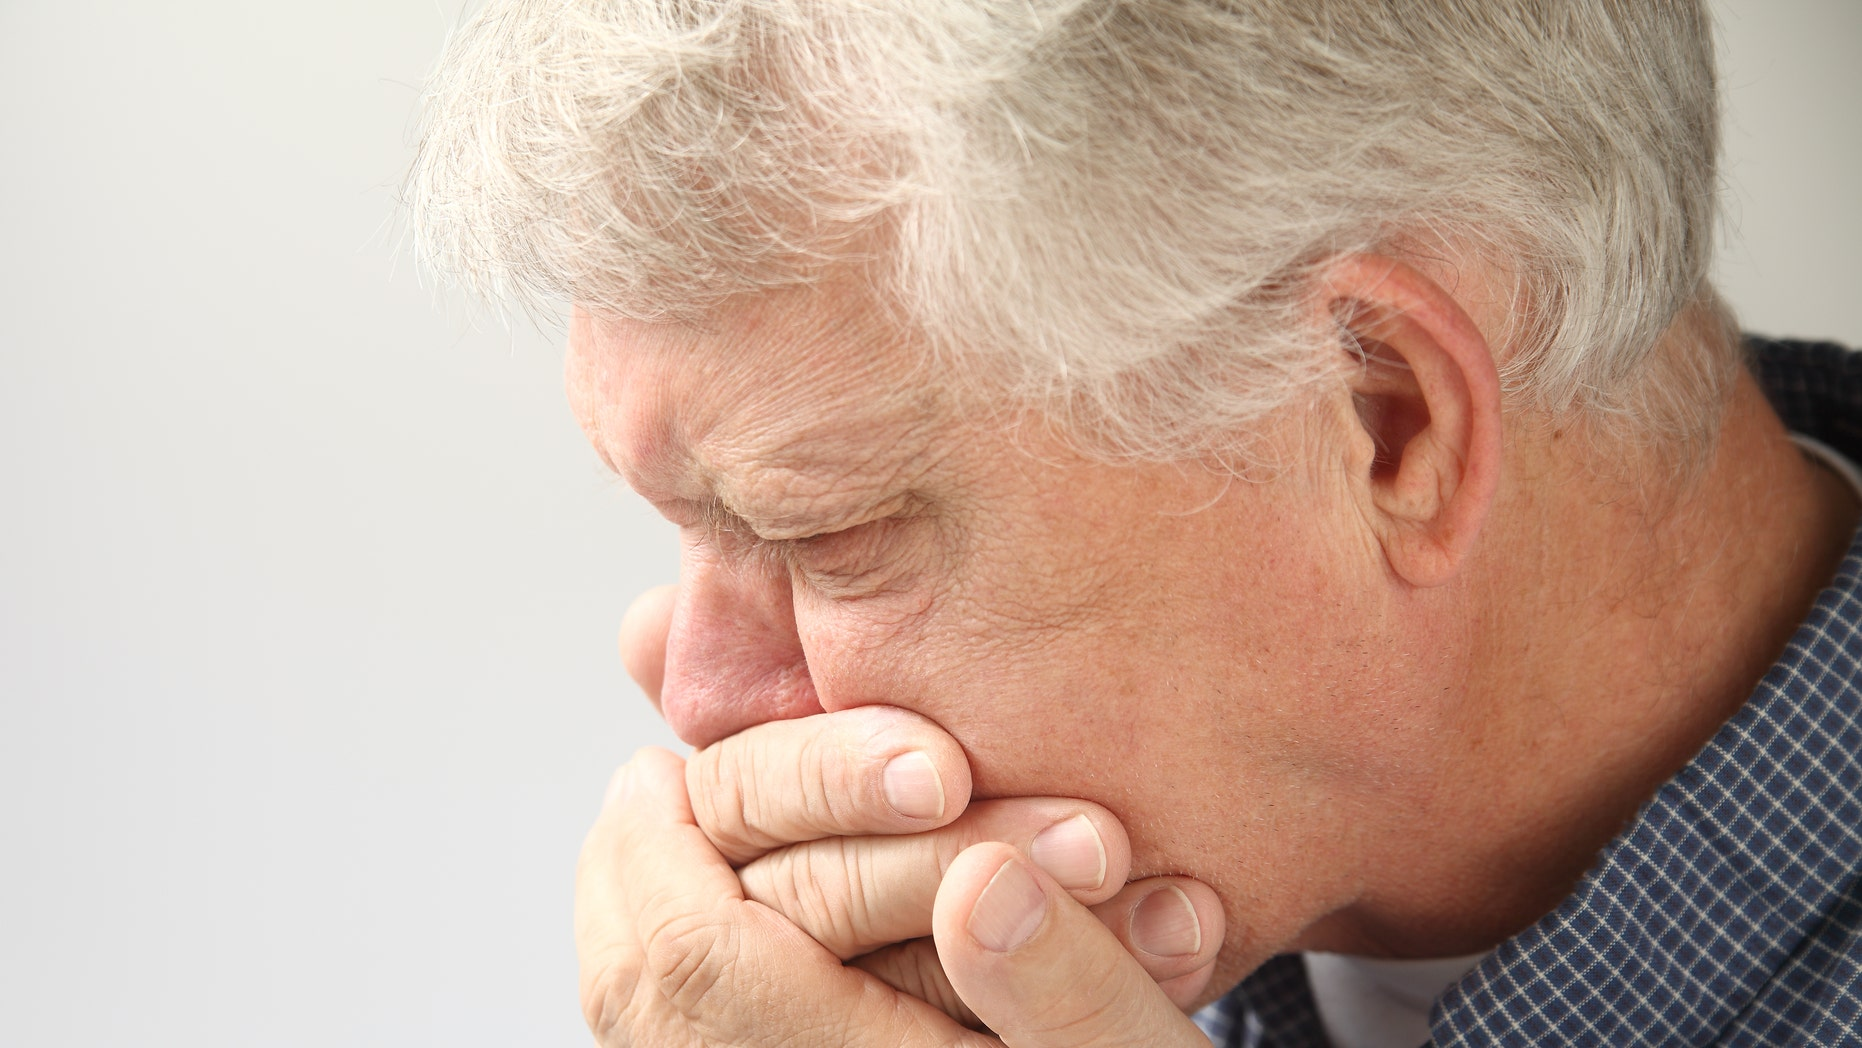 senior man holds his hand to his mouth while feeling nauseous